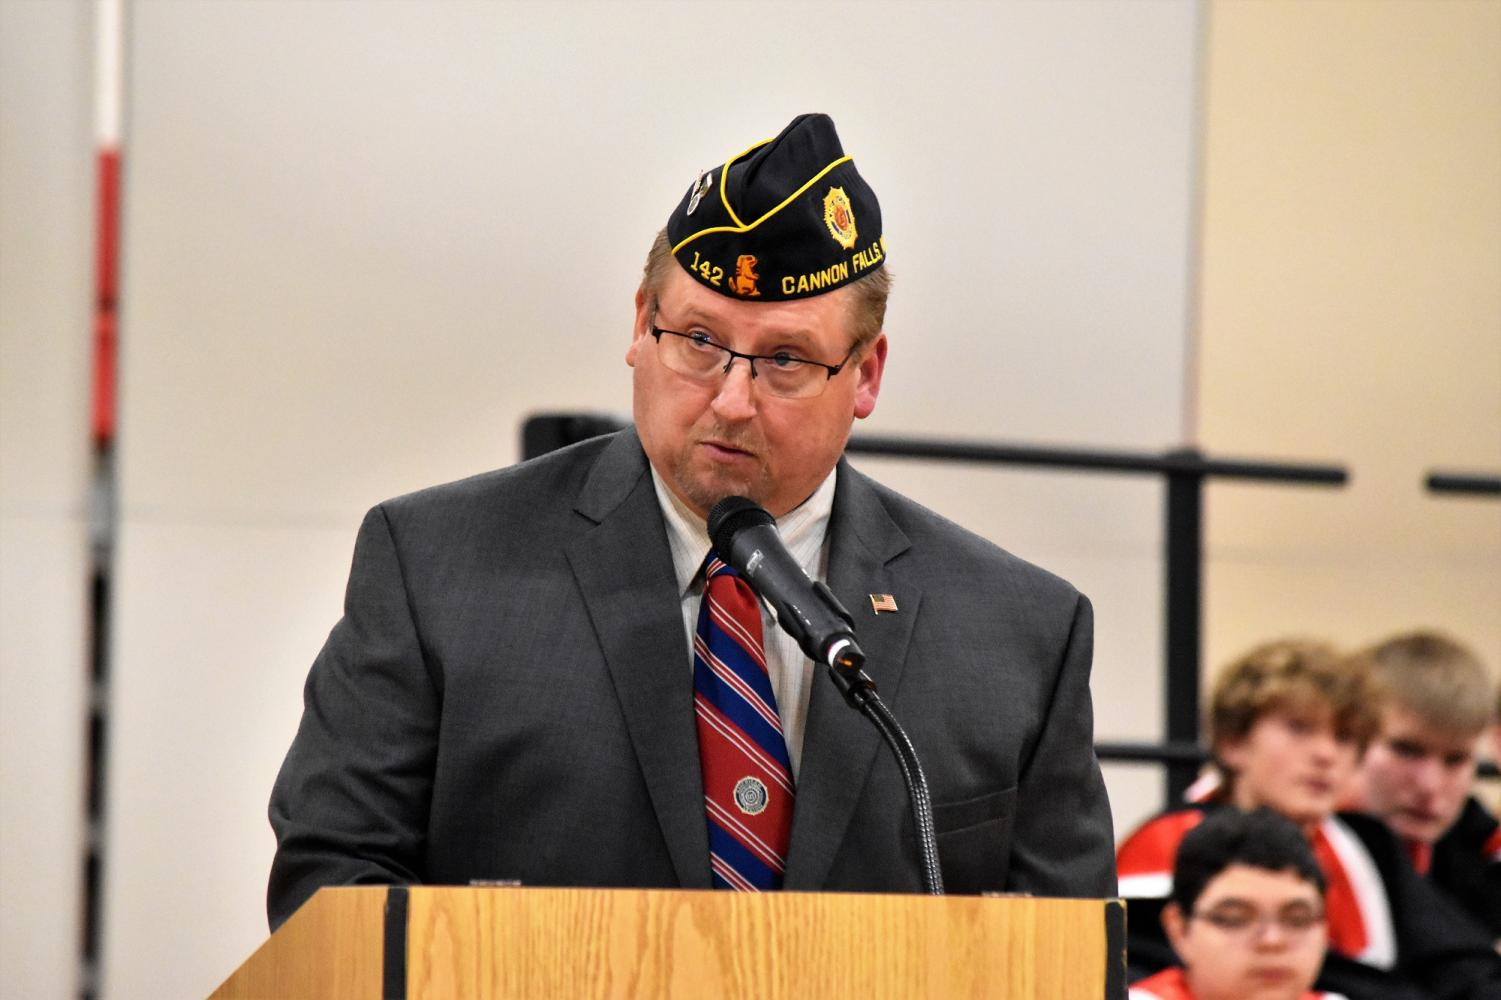 Craig Hedstrom addressed the gym packed full of students on Veterans Day.